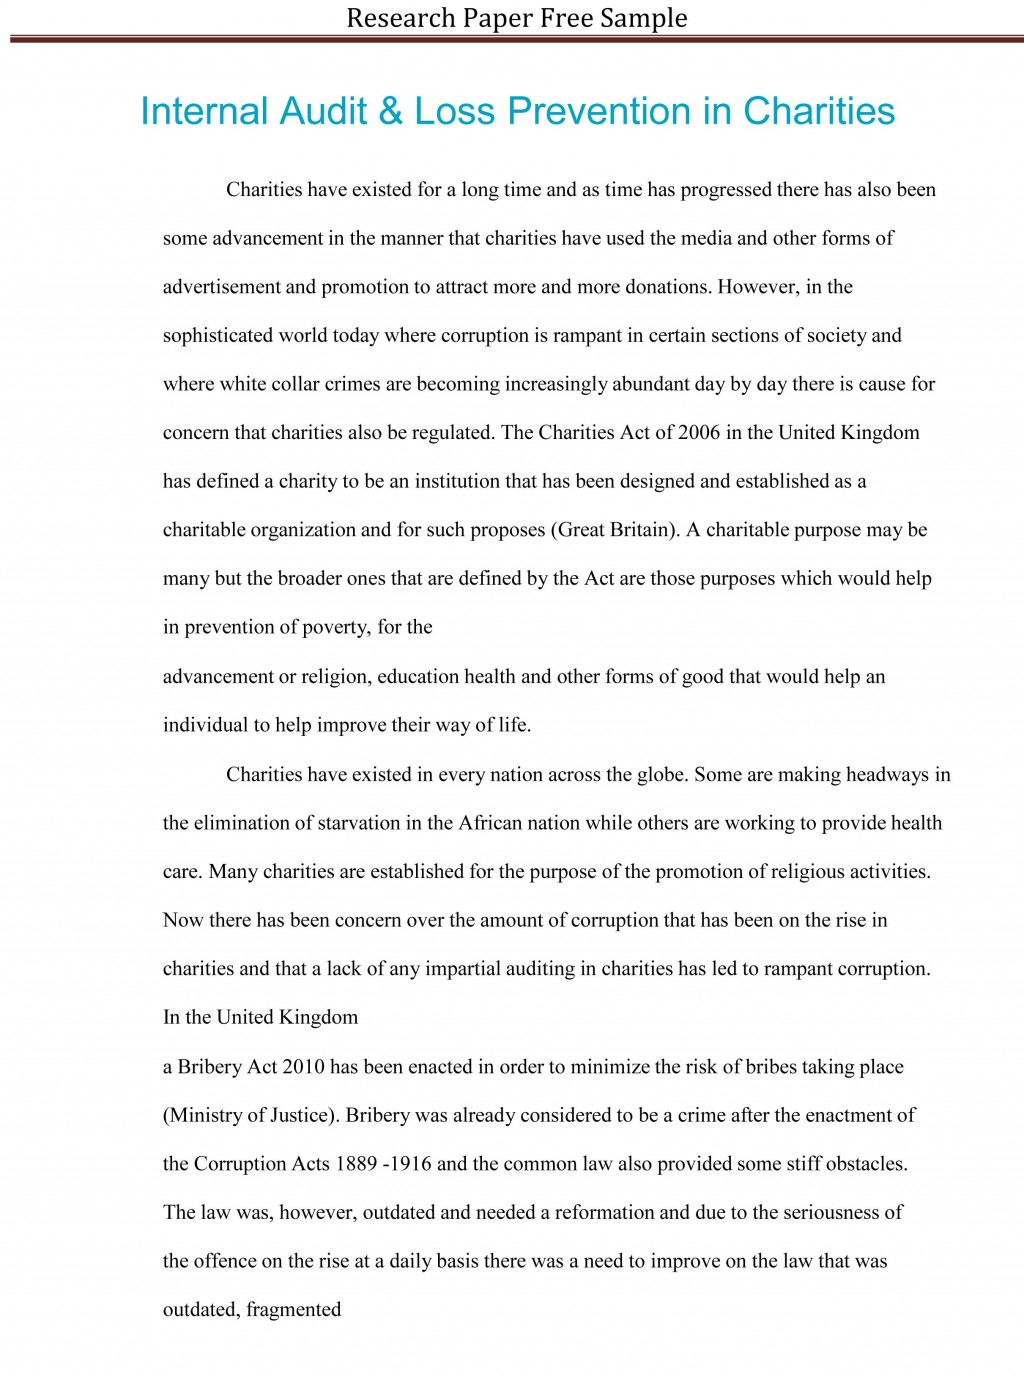 019 Research Paper Education Topic Wondrous Suggestions Ideas Large